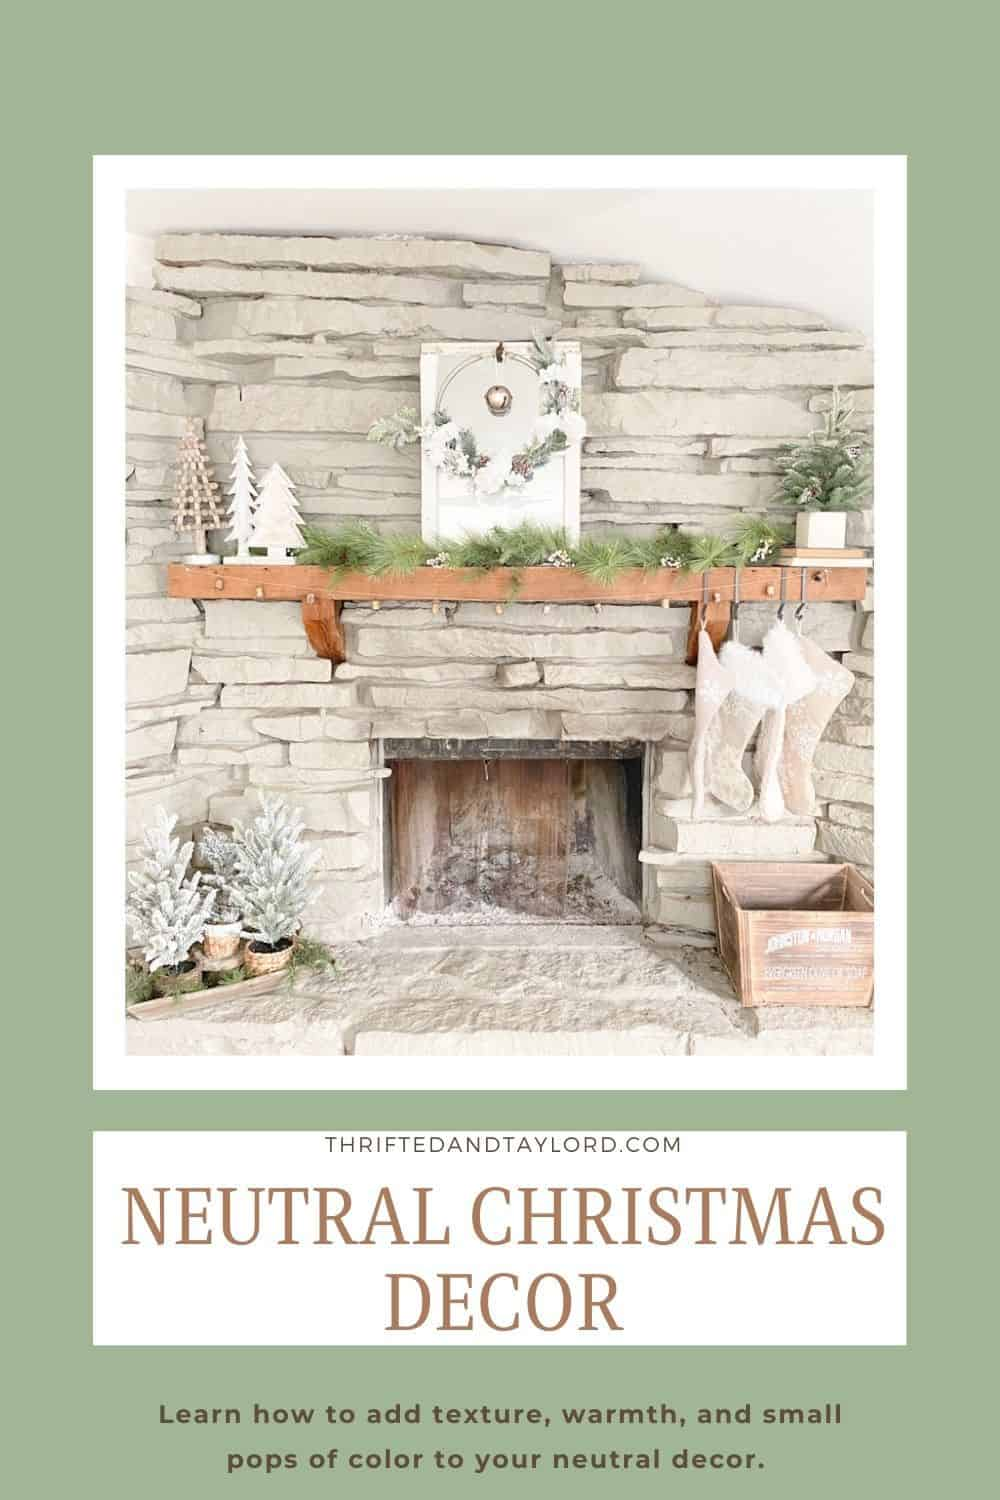 Image shows a fireplace with neutral Christmas decorations.